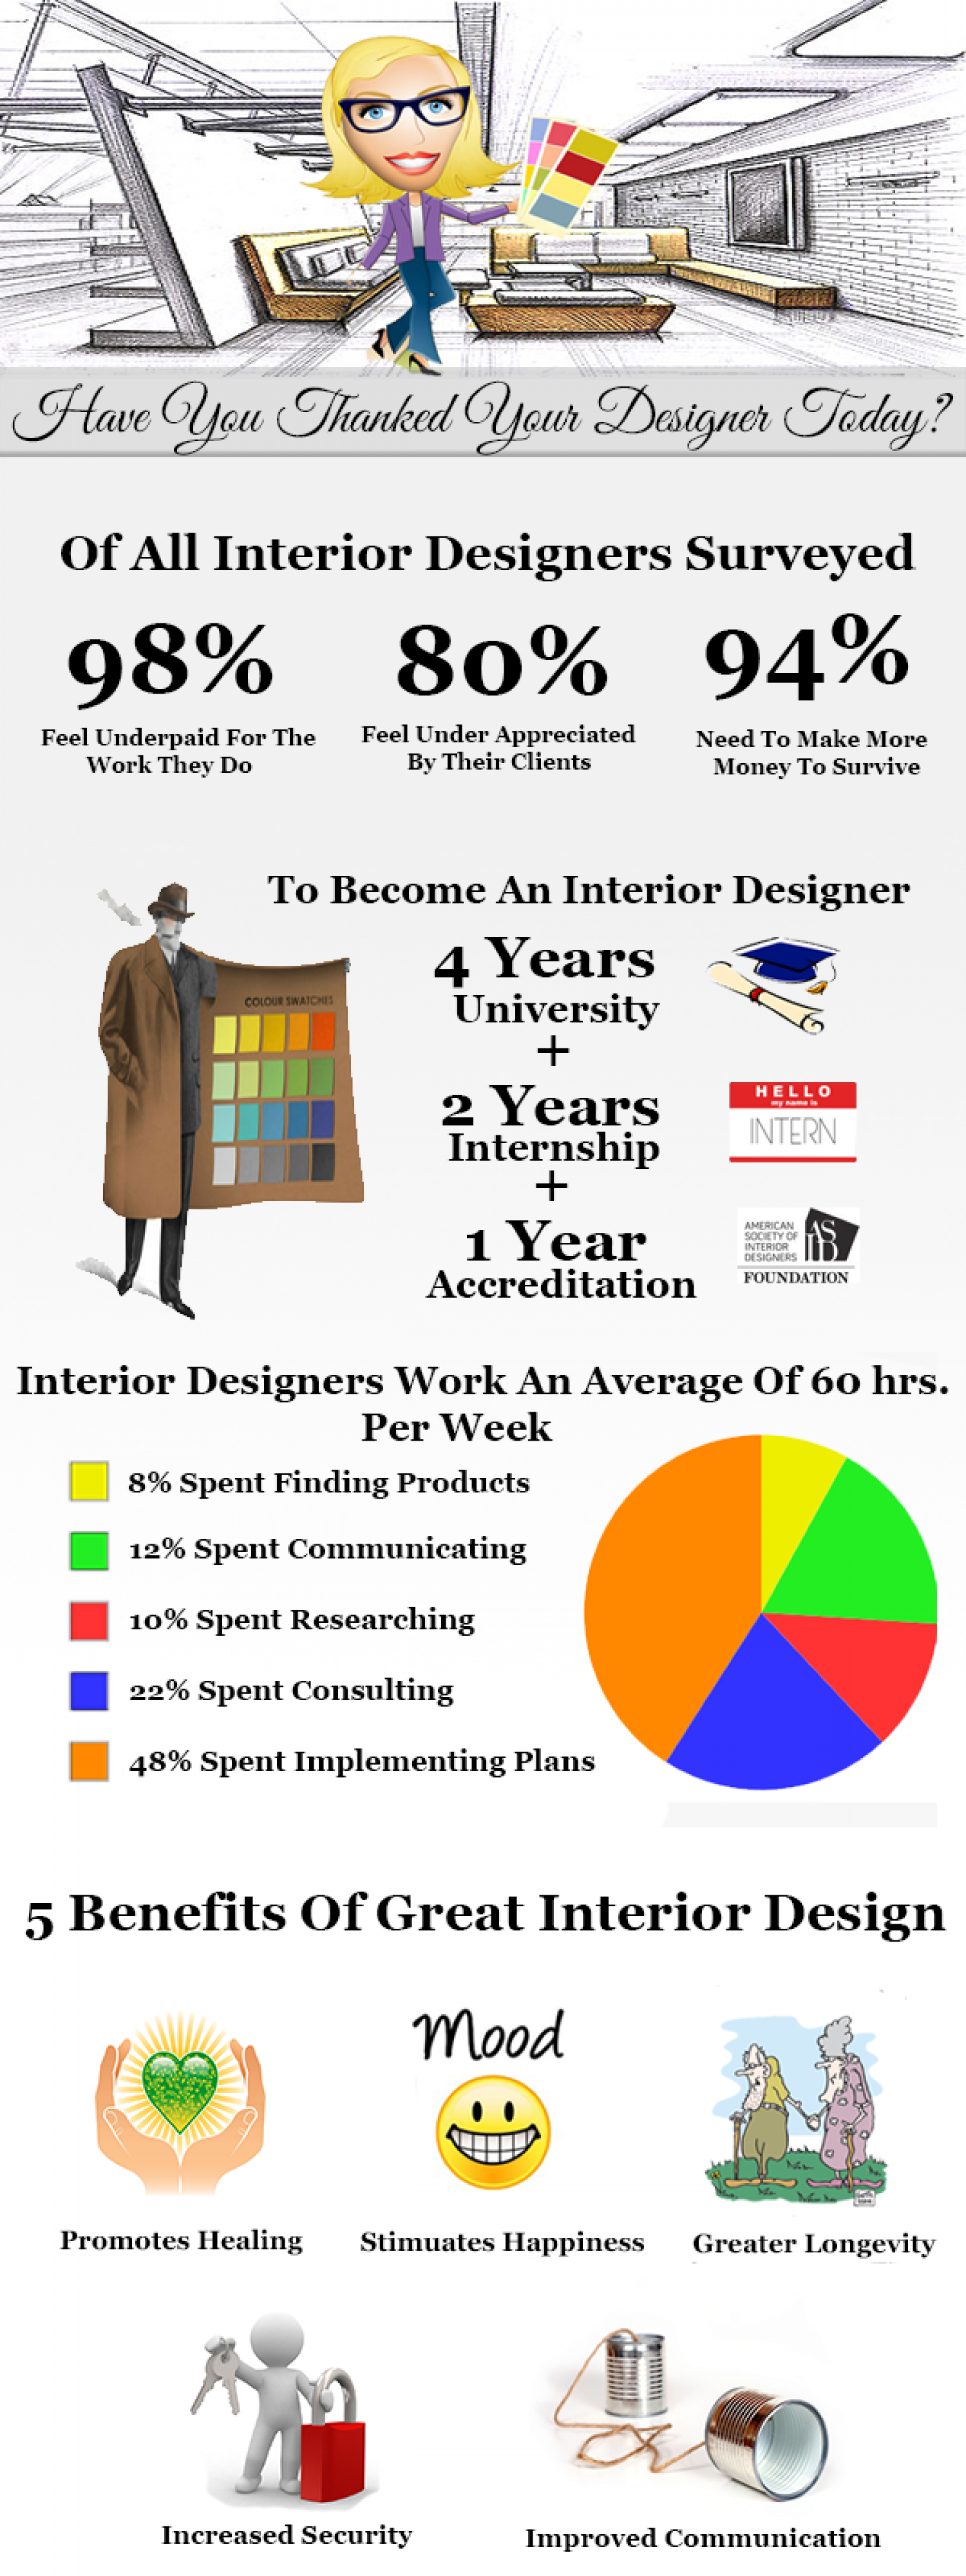 Have You Thanked Your Interior Designer Today? Infographic